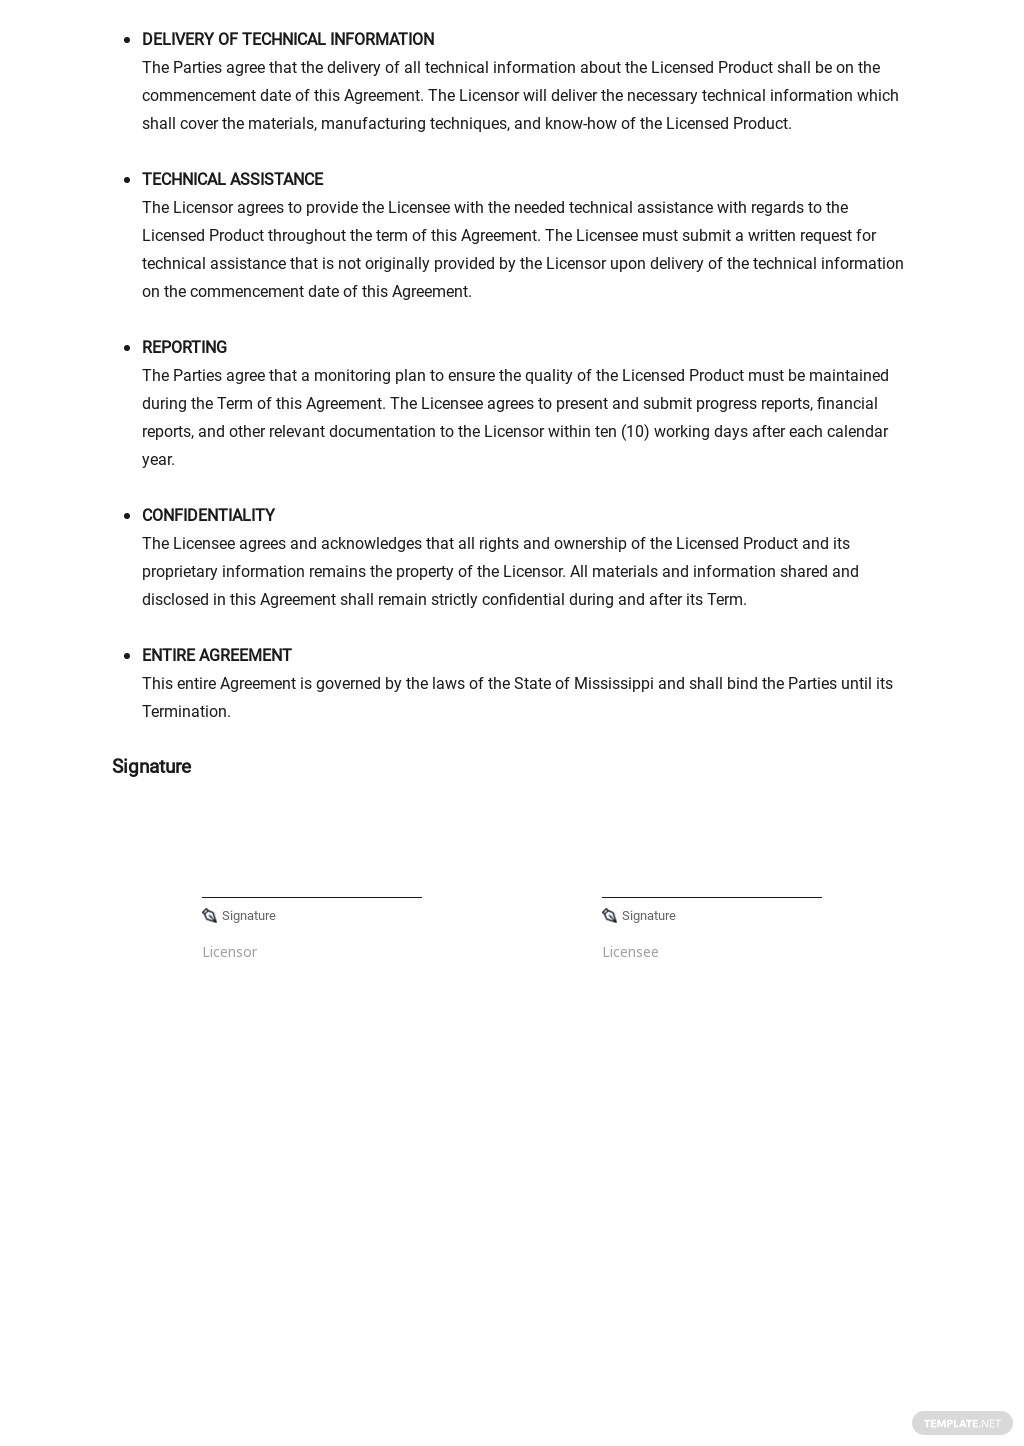 License Agreement Non Exclusive License To Manufacture Template 2.jpe